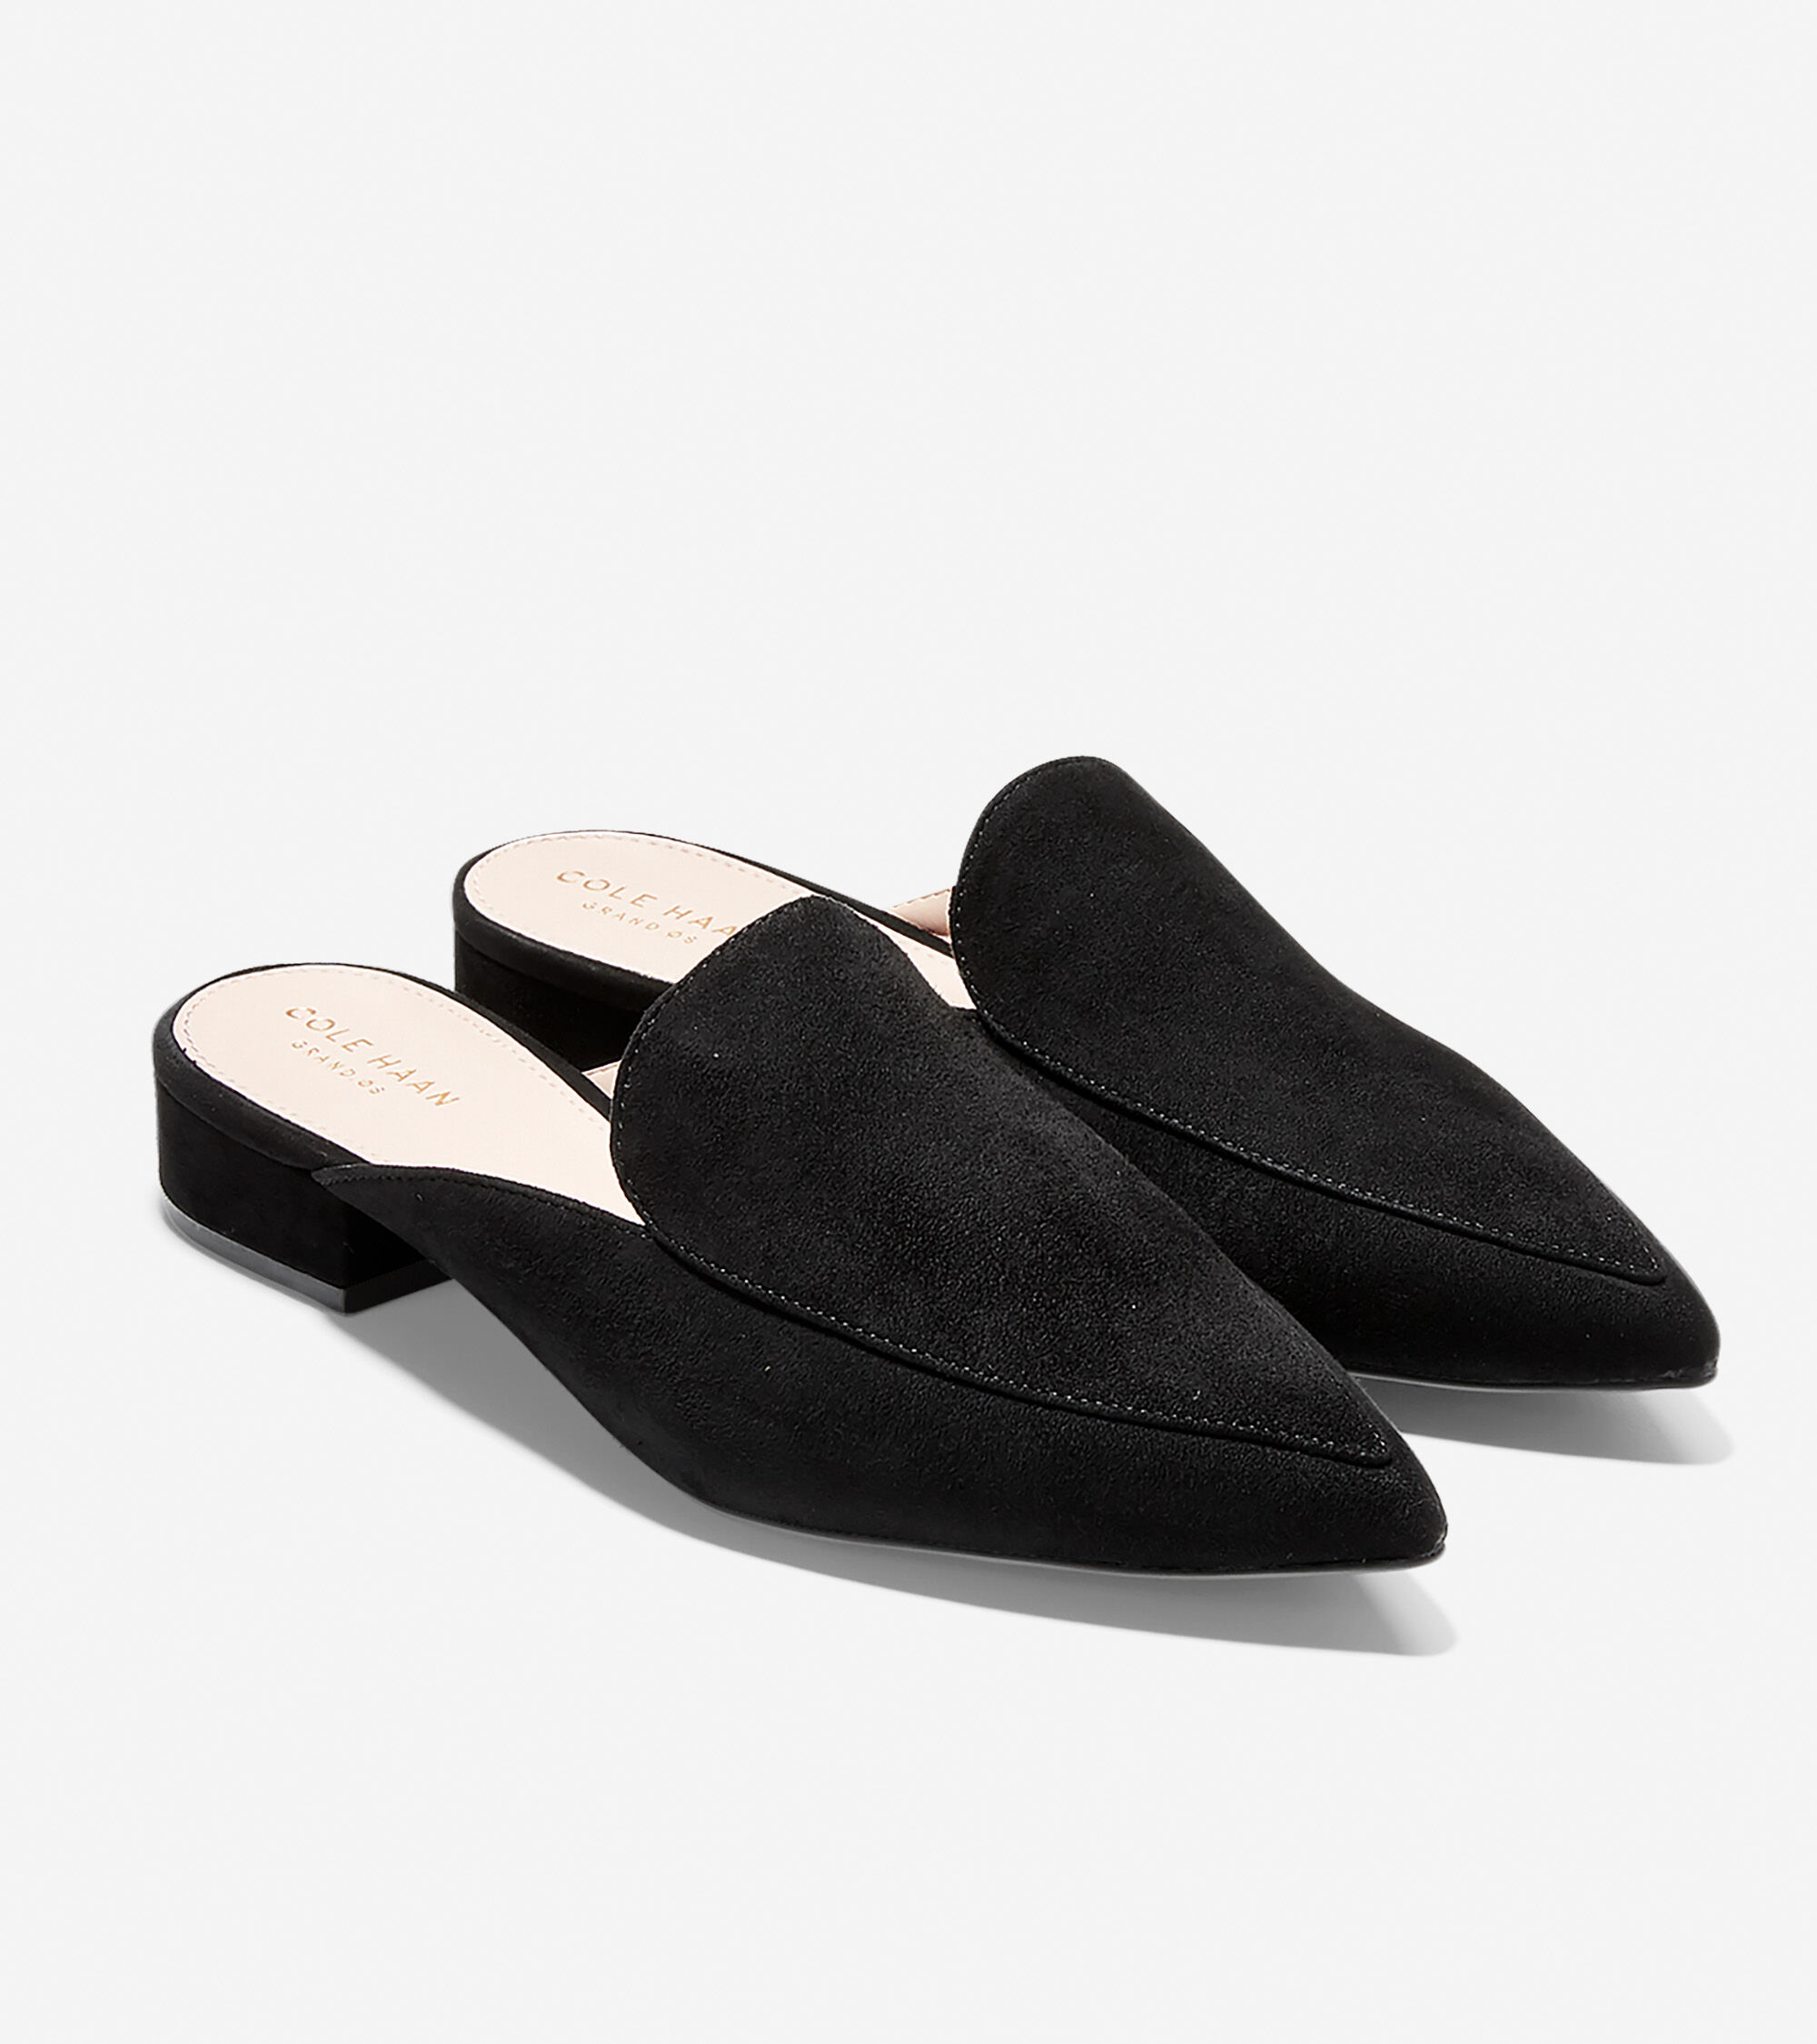 Promotion Code For Cole Haan Shoes Online